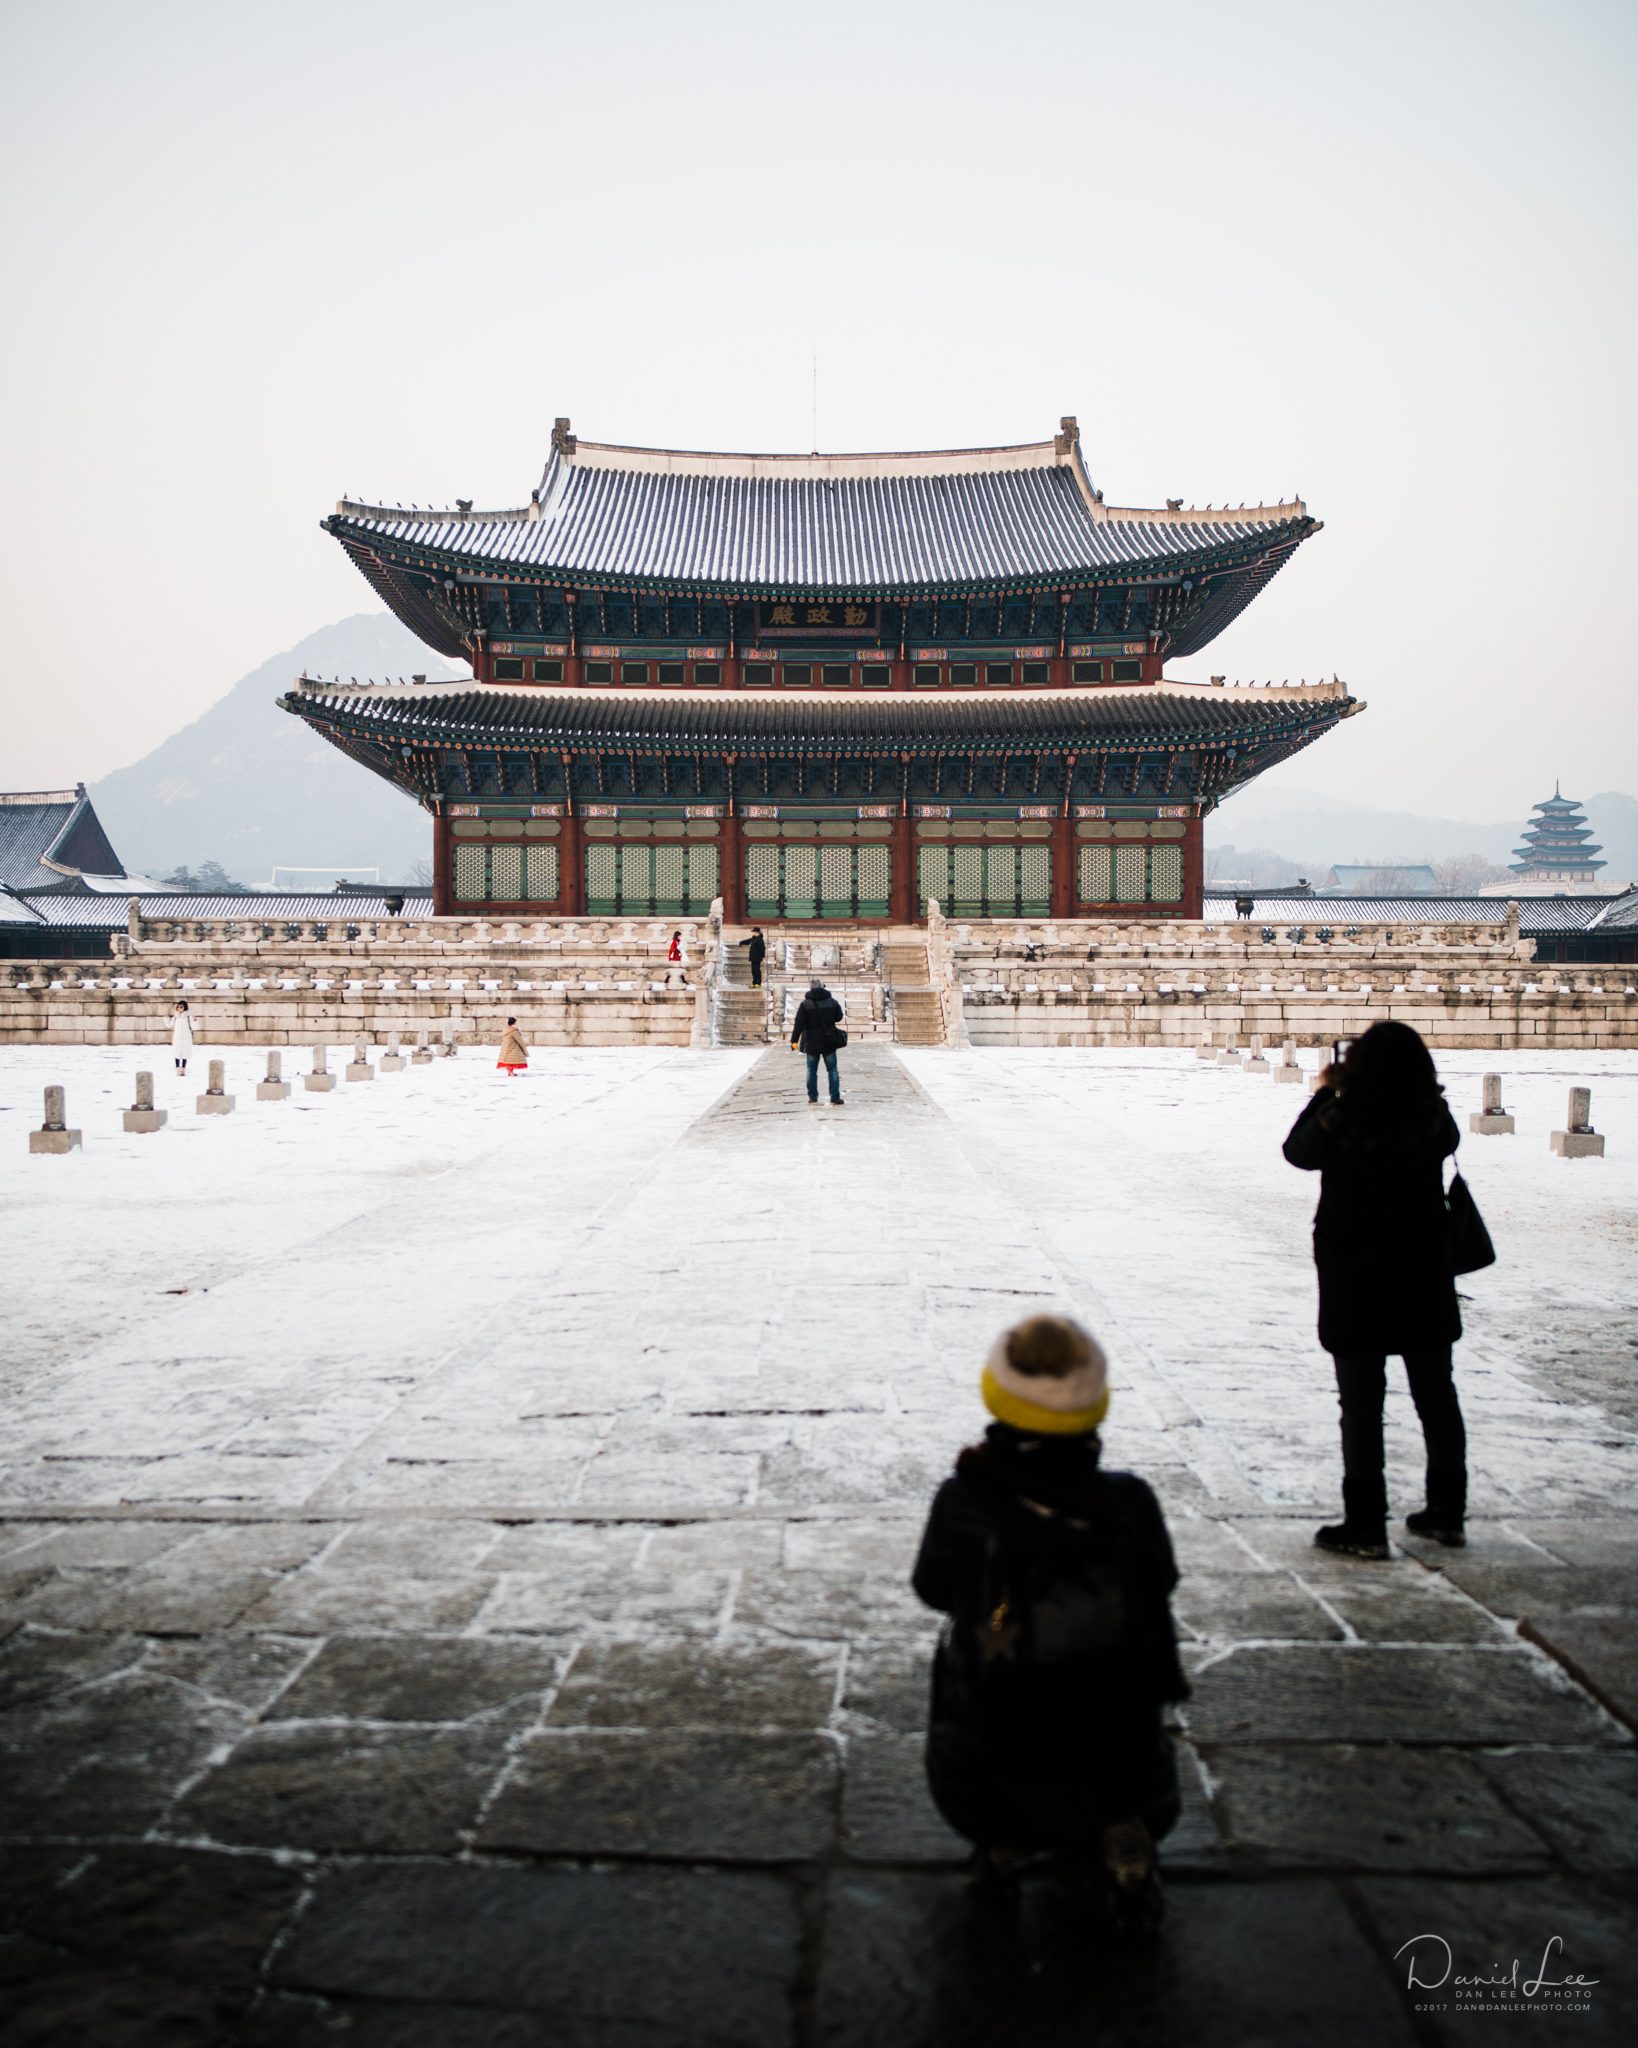 Tourists get their last minute photos at Gyeongbukgung before the doors close for the day. Seoul, Republic of Korea. Photo by Daniel Lee.